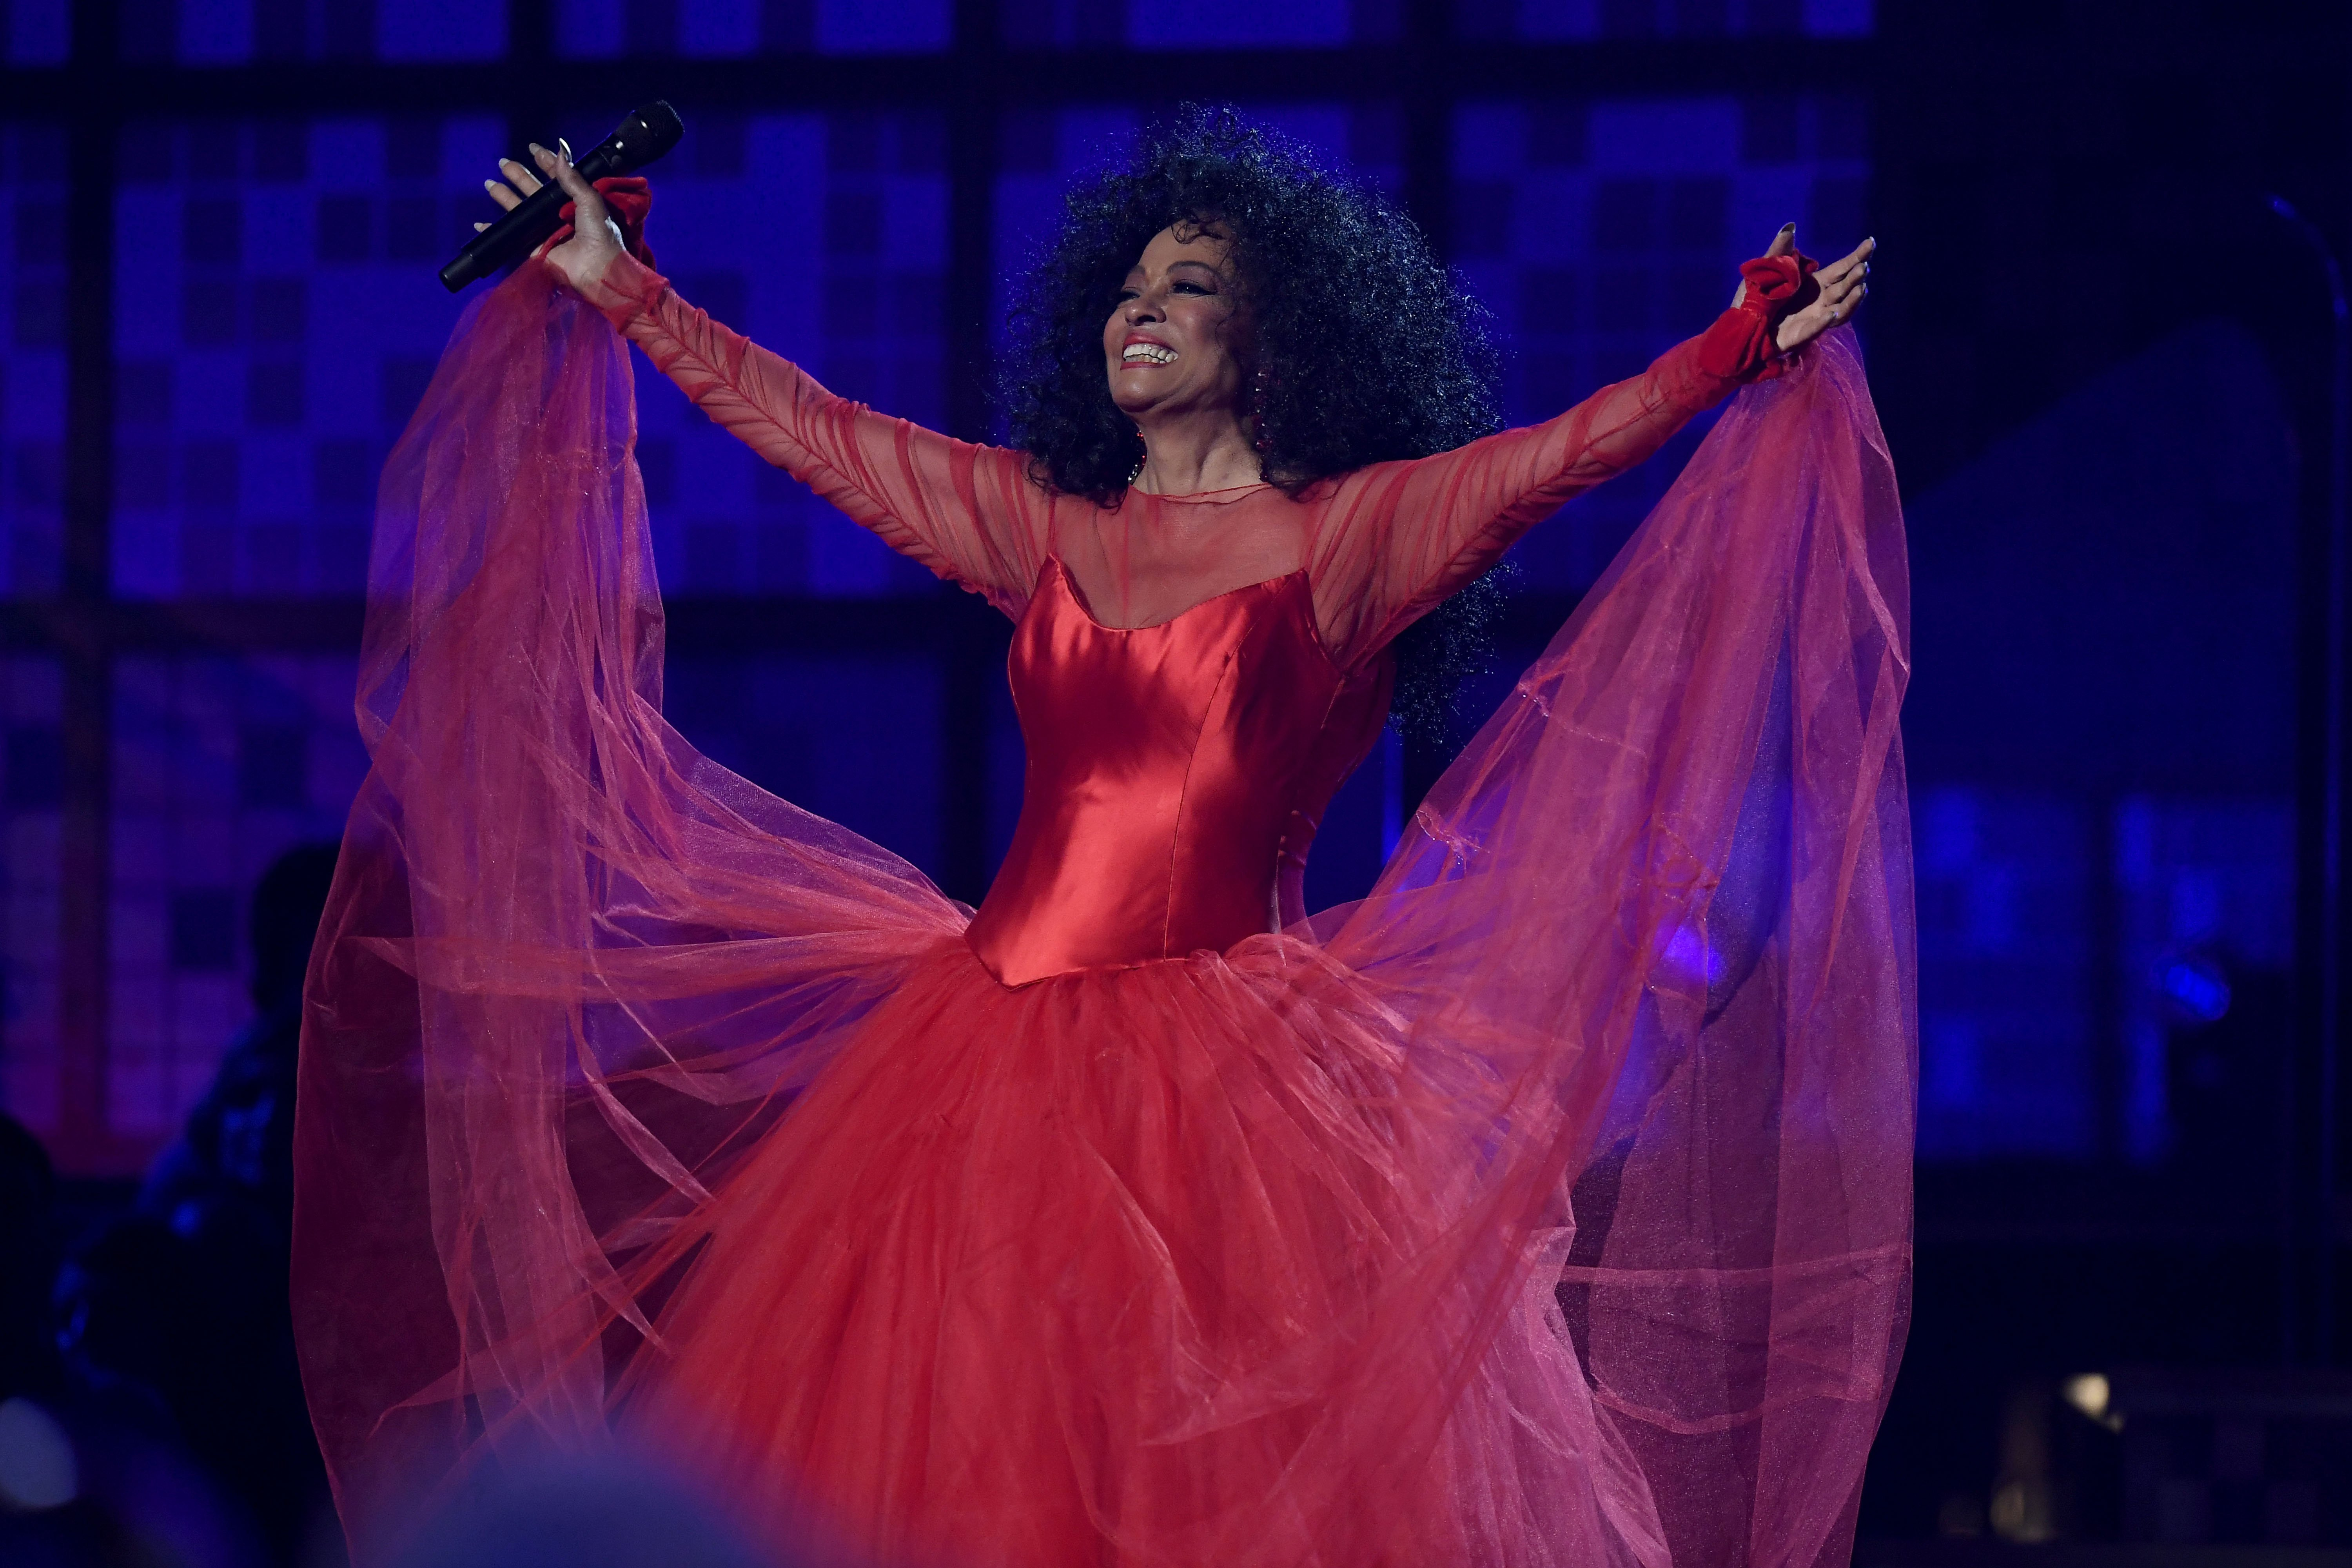 Diana Ross performs onstage during the 61st Annual GRAMMY Awards at Staples Center on February 10, 2019, in Los Angeles, California. | Source: Getty Images.